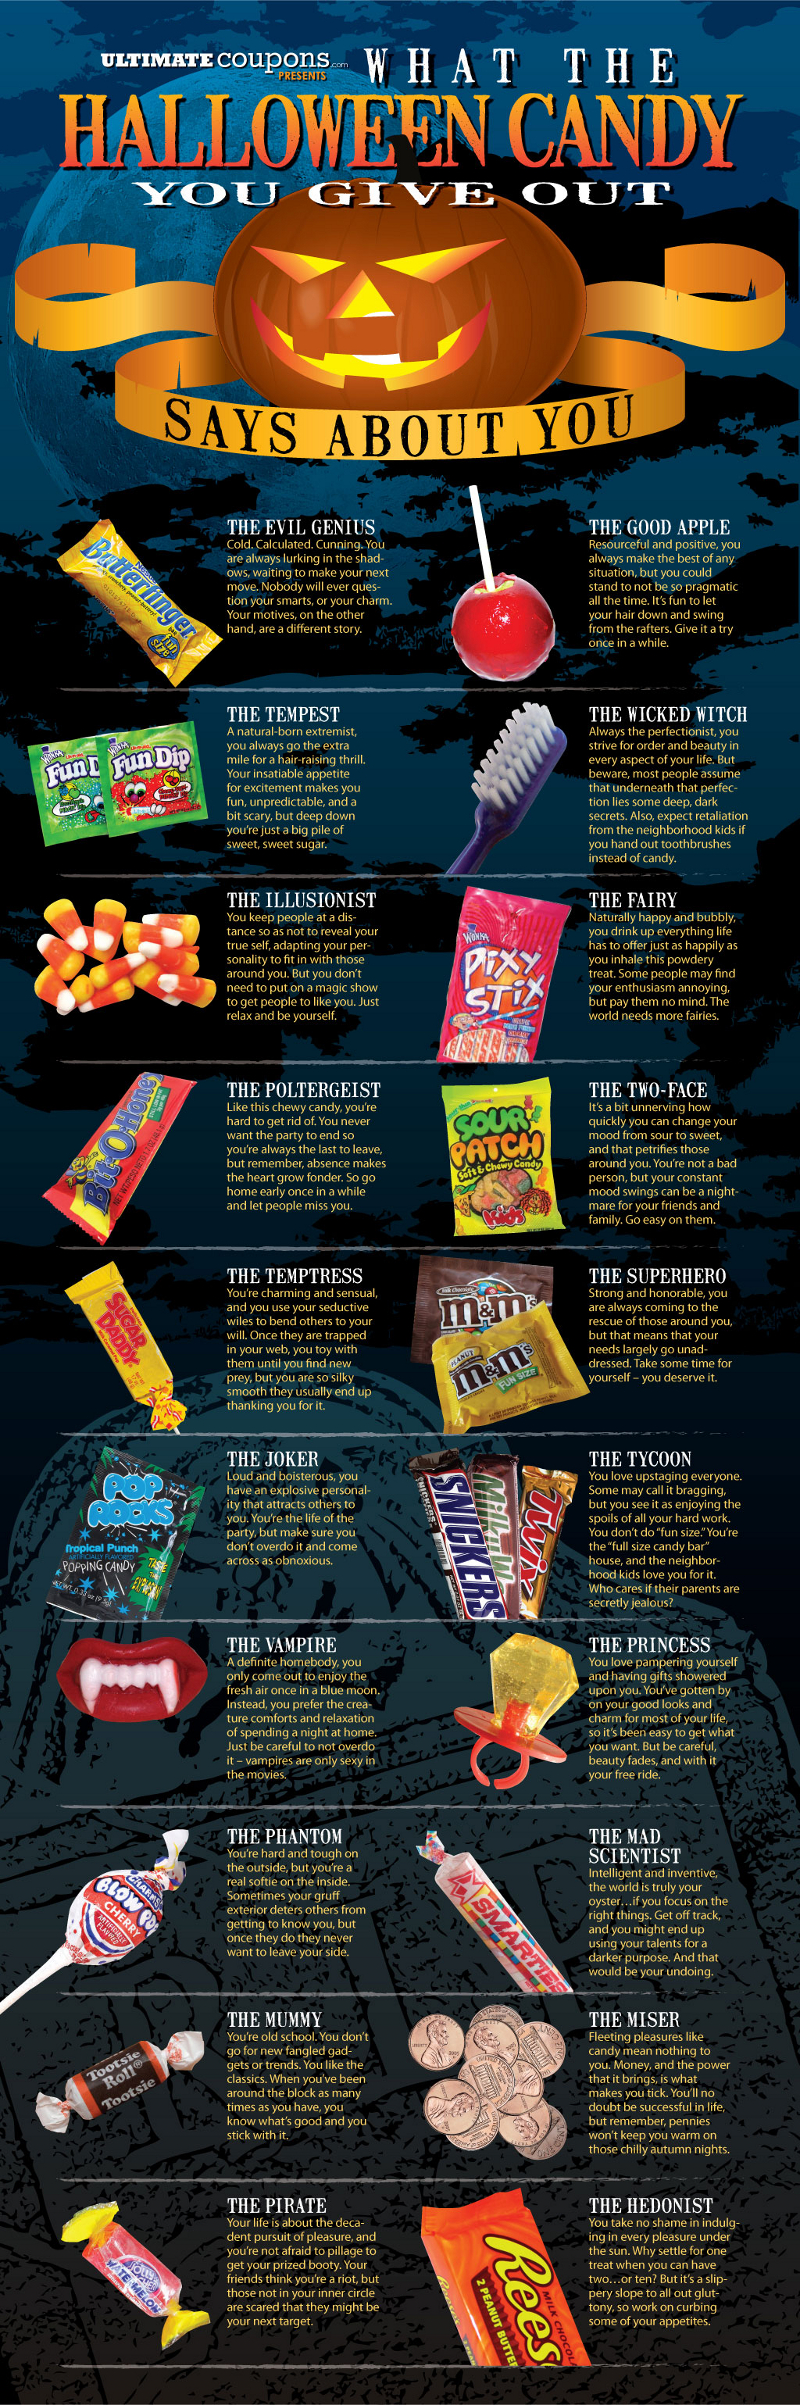 What Halloween Candy Says About You